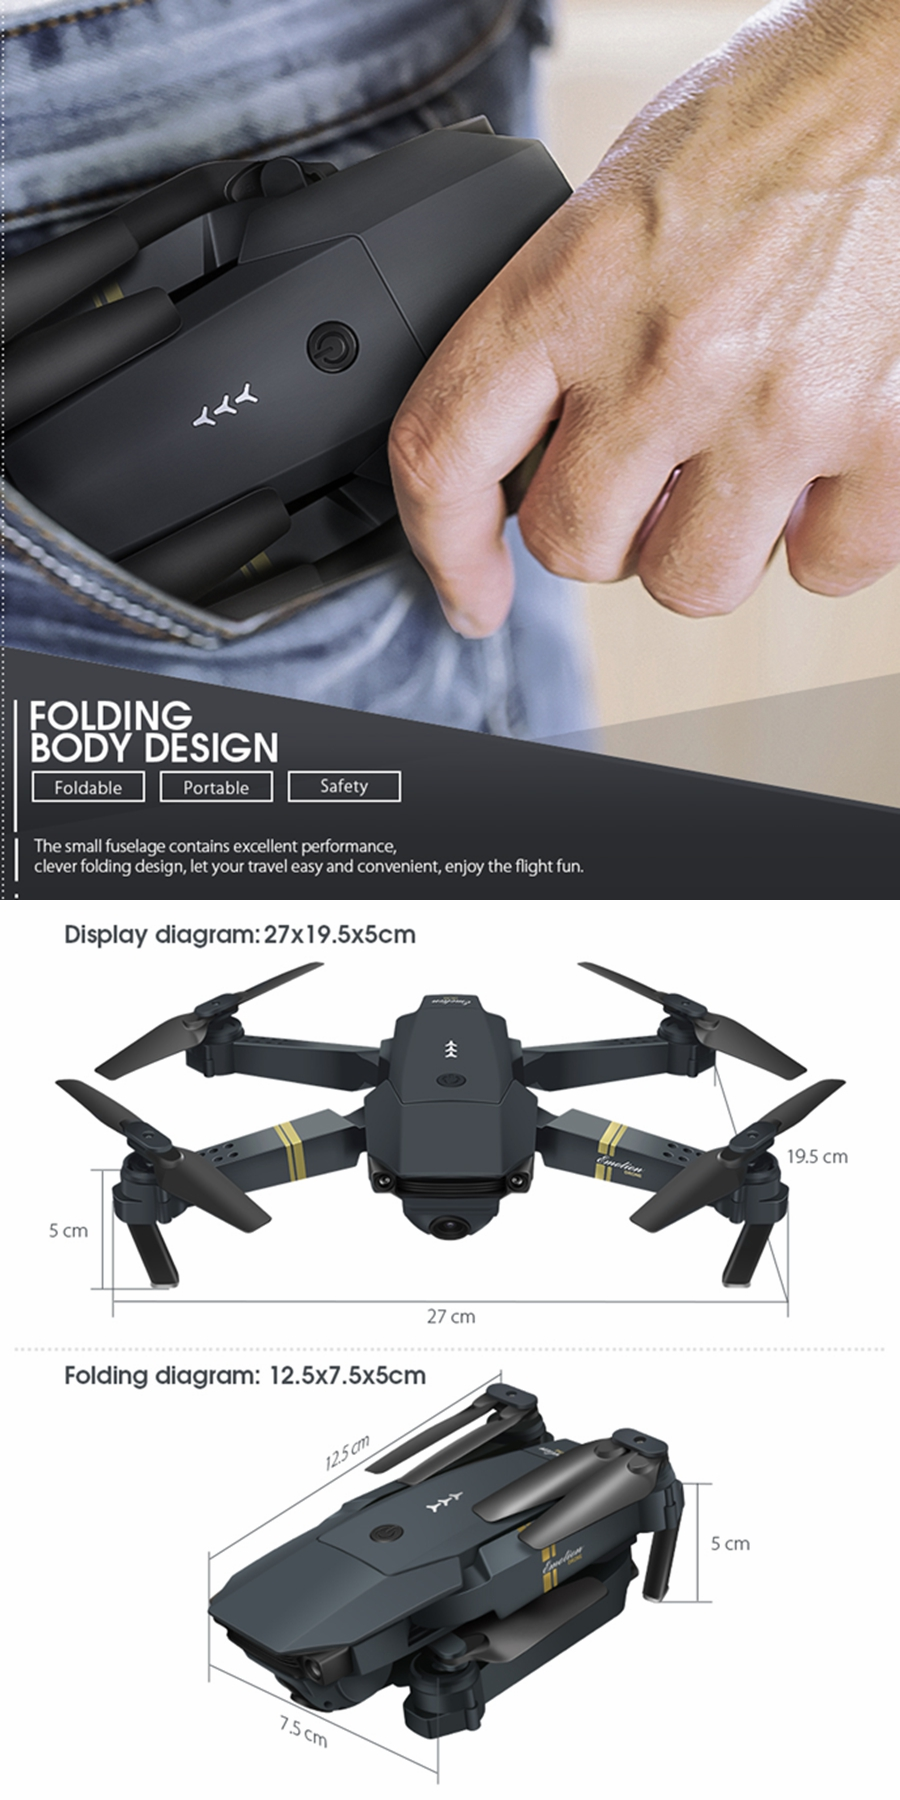 EMOTION DroneX 1080P HD Camera Drone with Bag